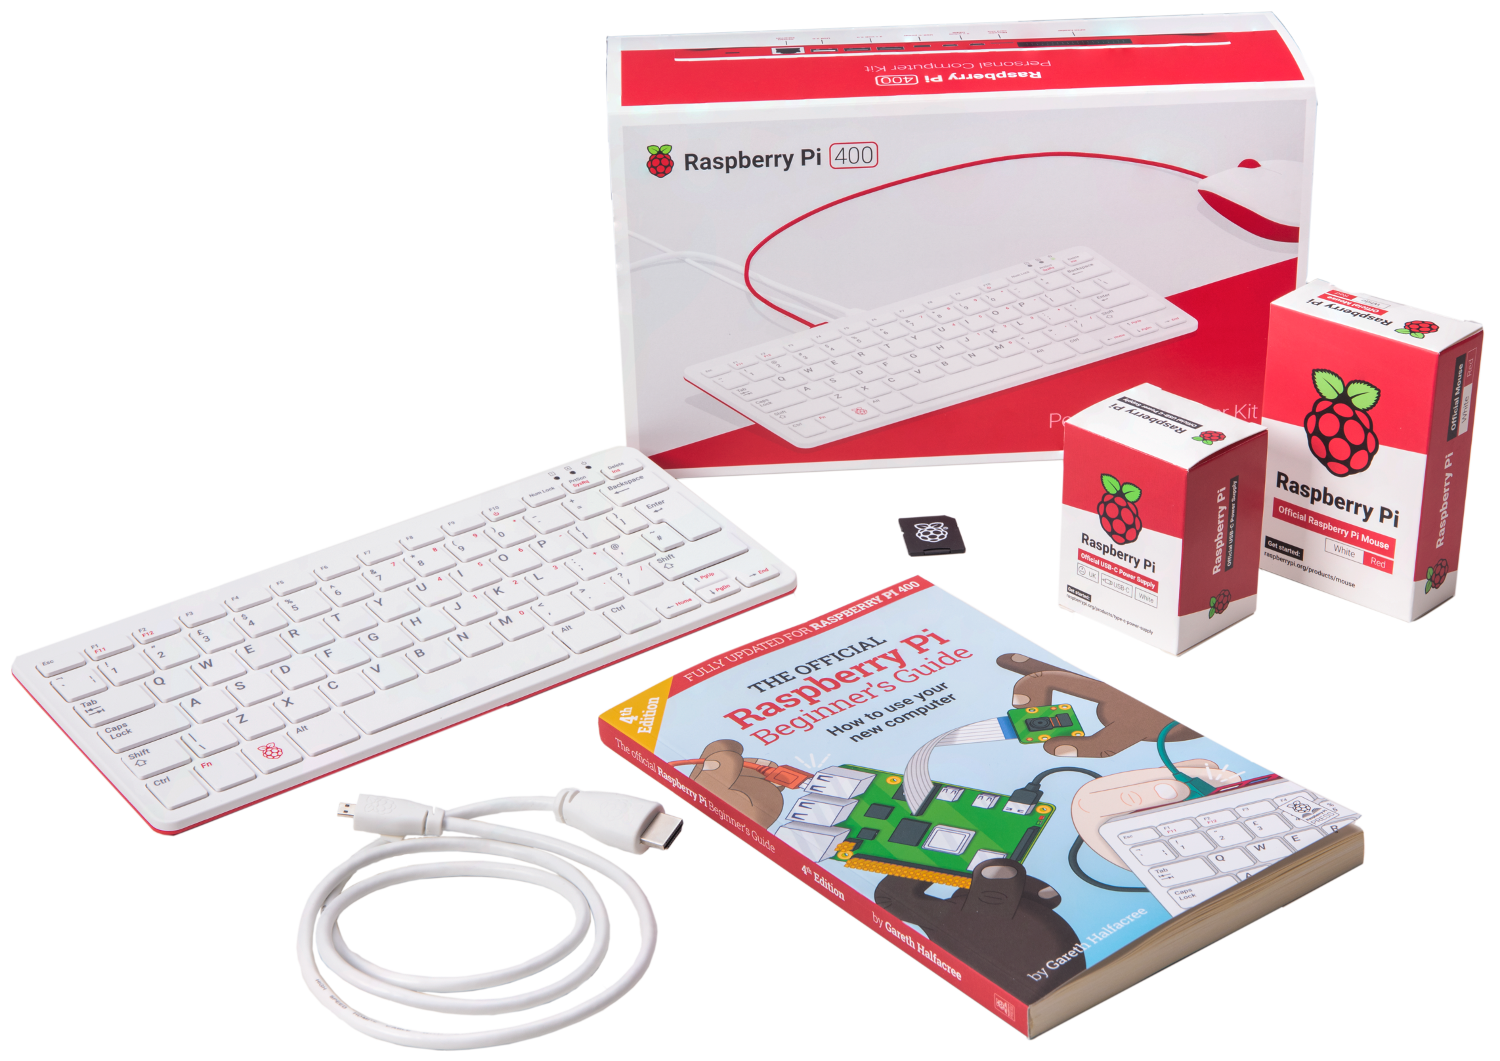 Content of the Raspberry-Pi 400 kit